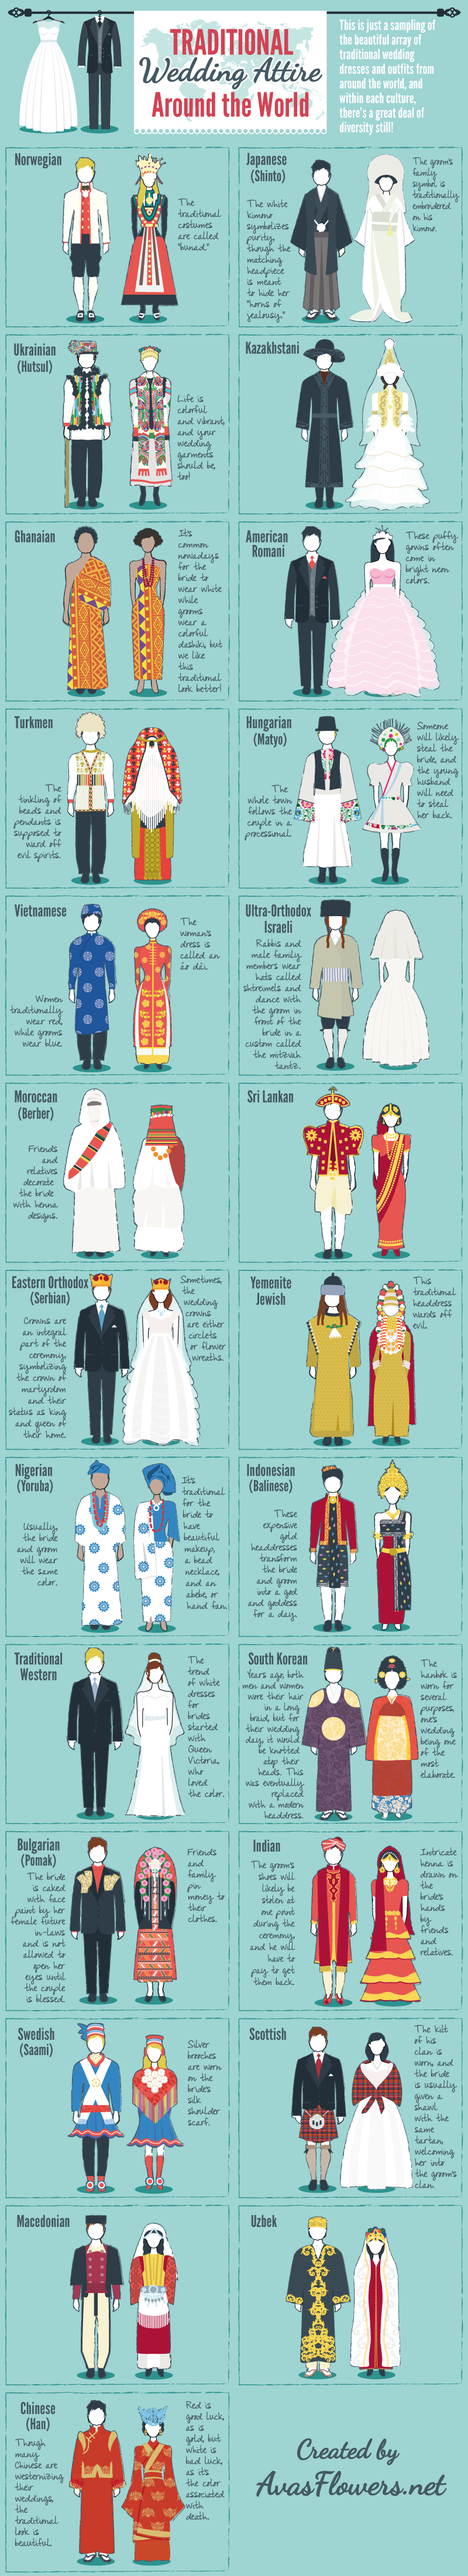 Traditional Wedding Attire Around the World - Avasflowers.net - Infographic